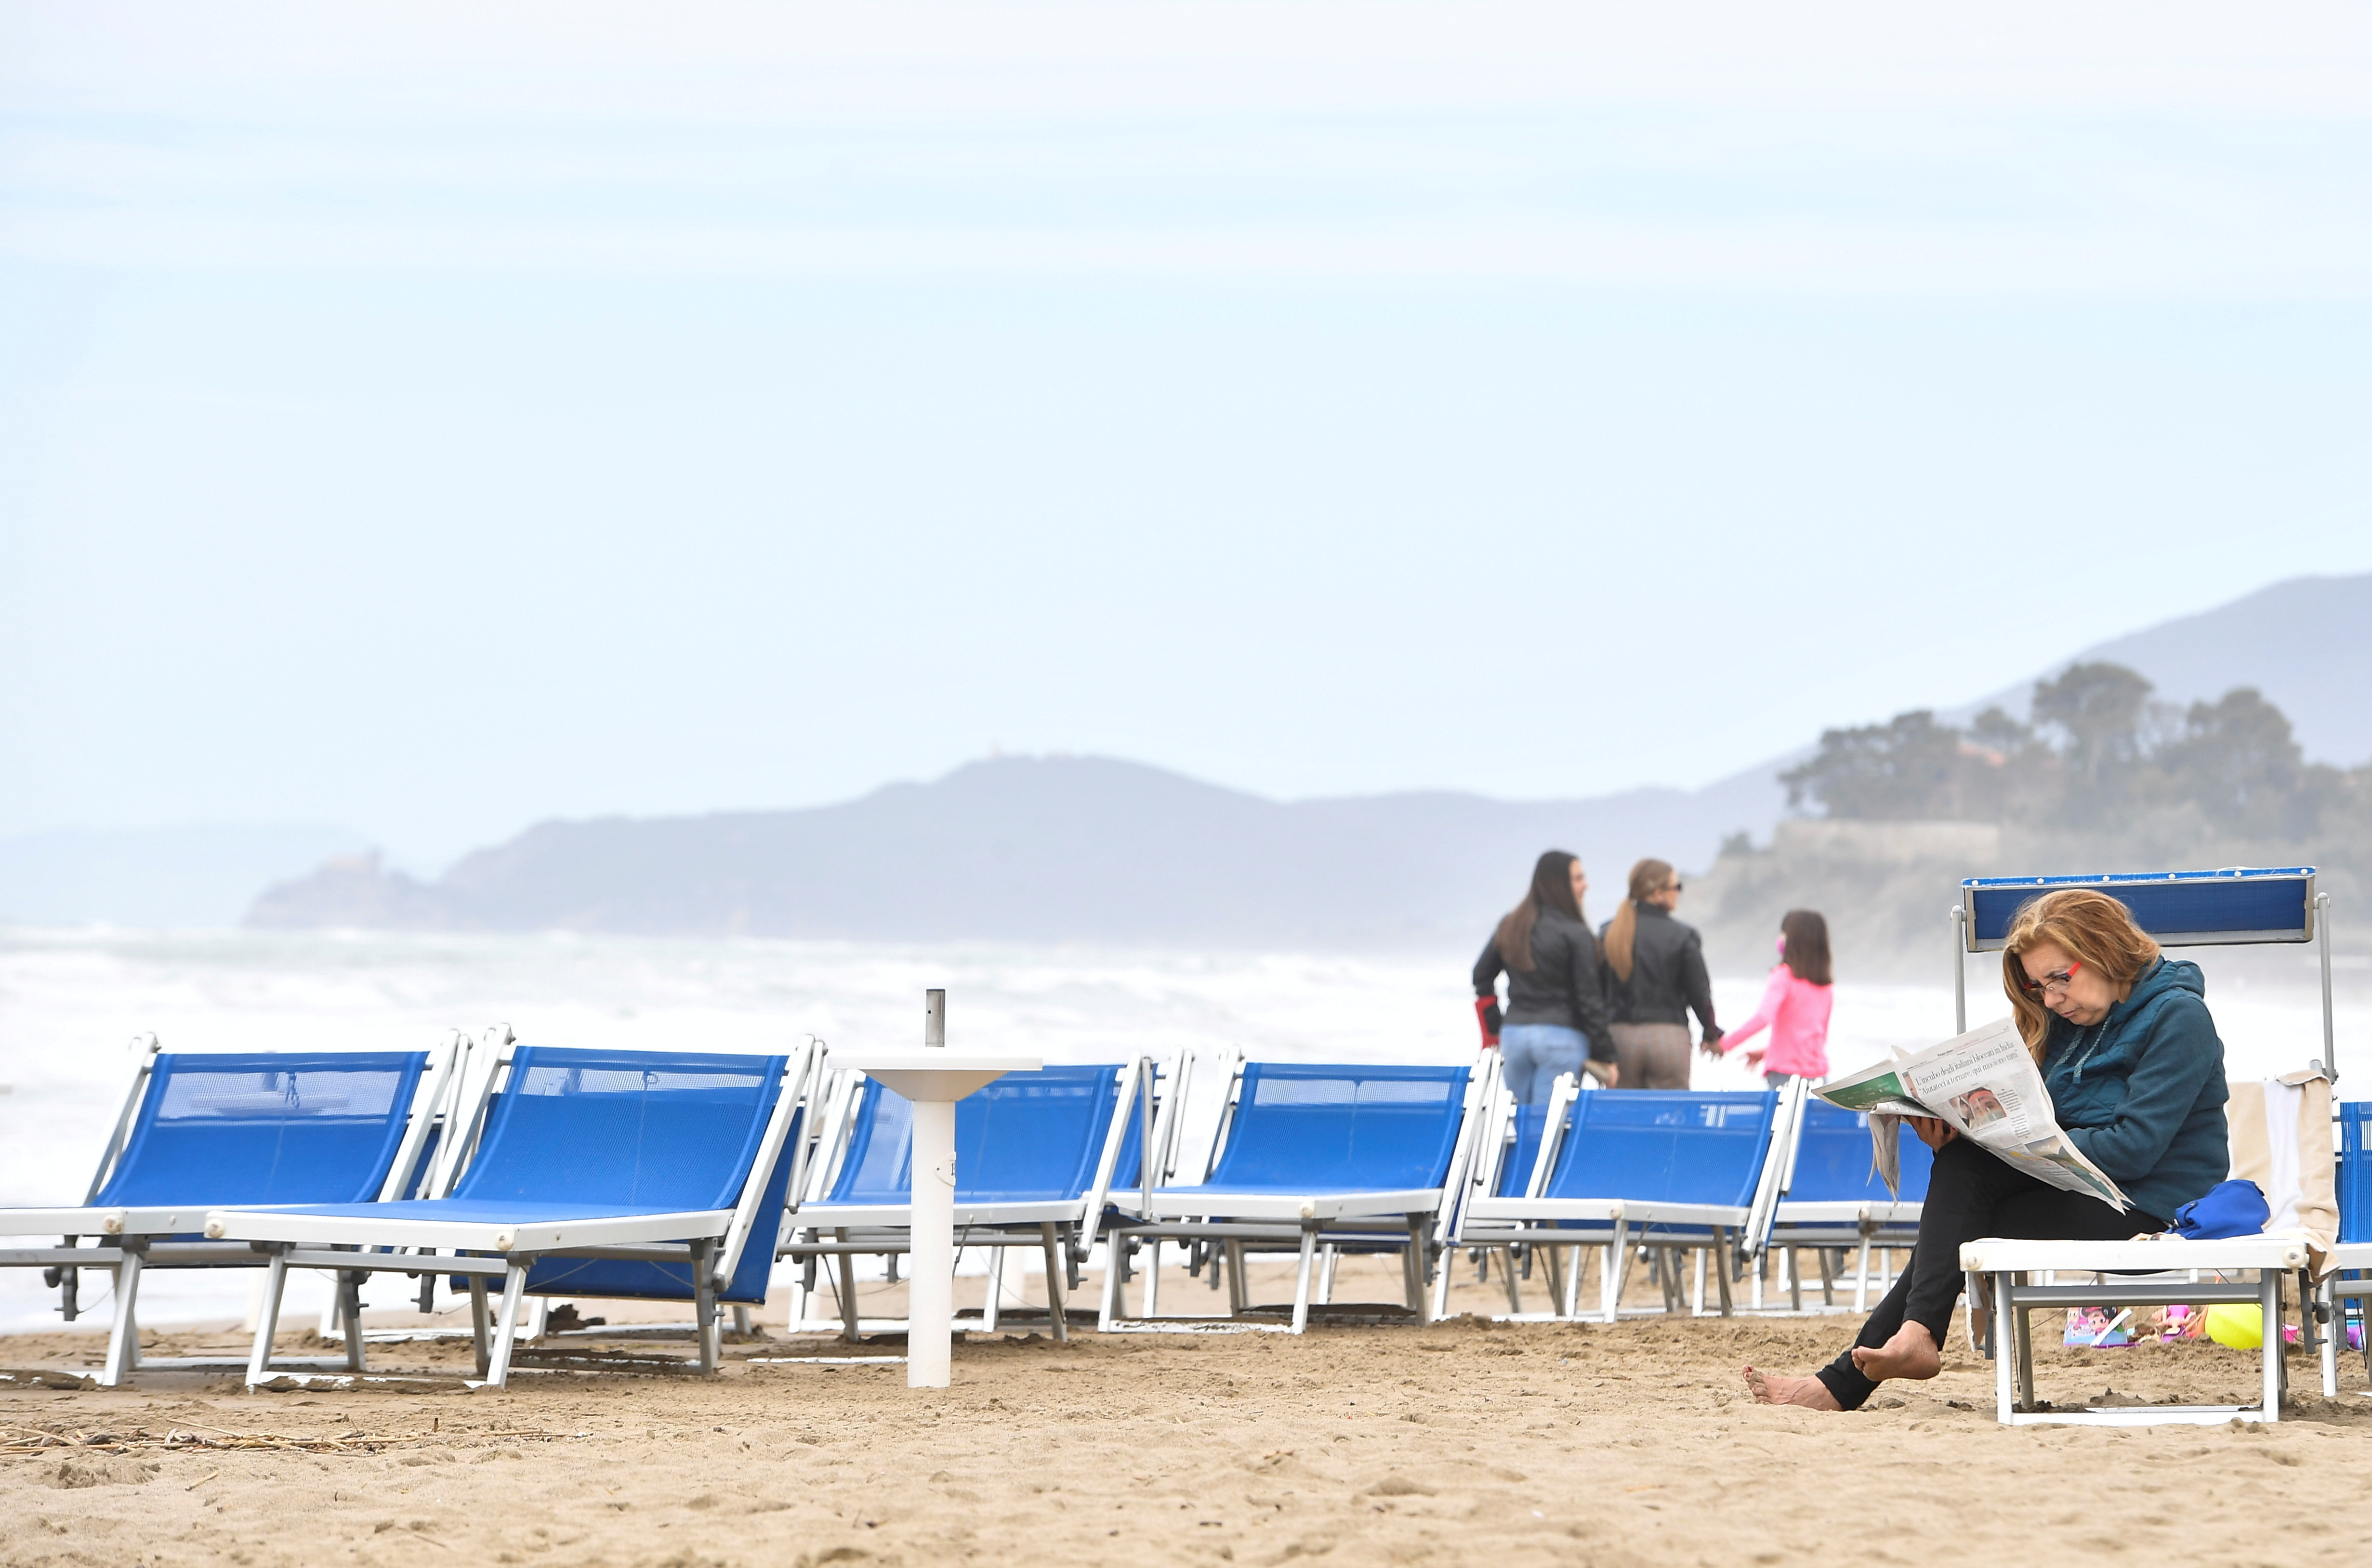 People enjoy a Sunday at the beach as coronavirus disease (COVID-19) restrictions ease around the country, in Castiglione della Pescaia, Italy, May 2, 2021. REUTERS/Jennifer Lorenzini